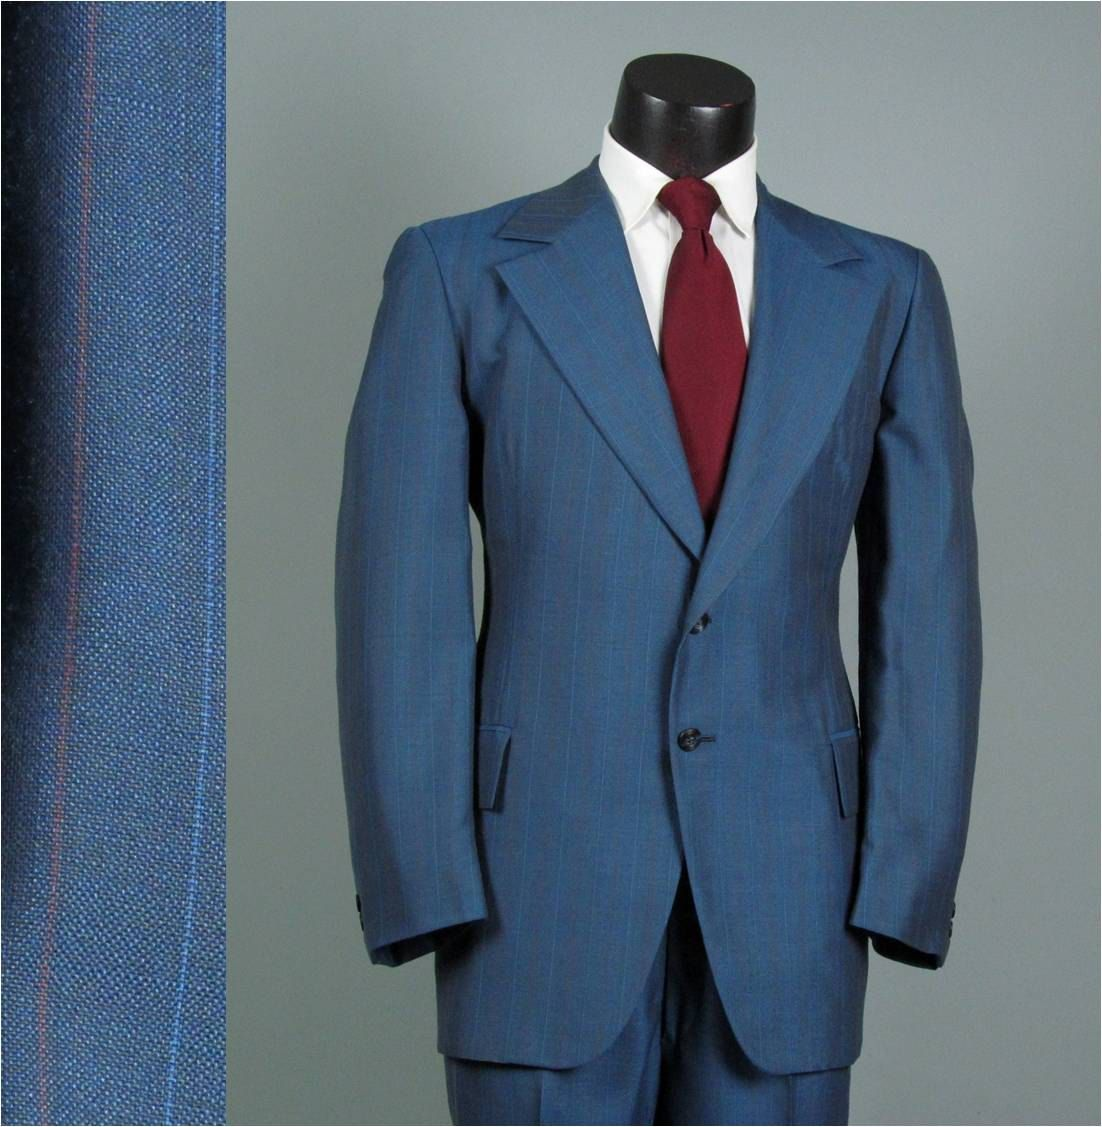 Vintage Mens Suit 1970s Bright French Blue Pinstripe Lightweight Two ...